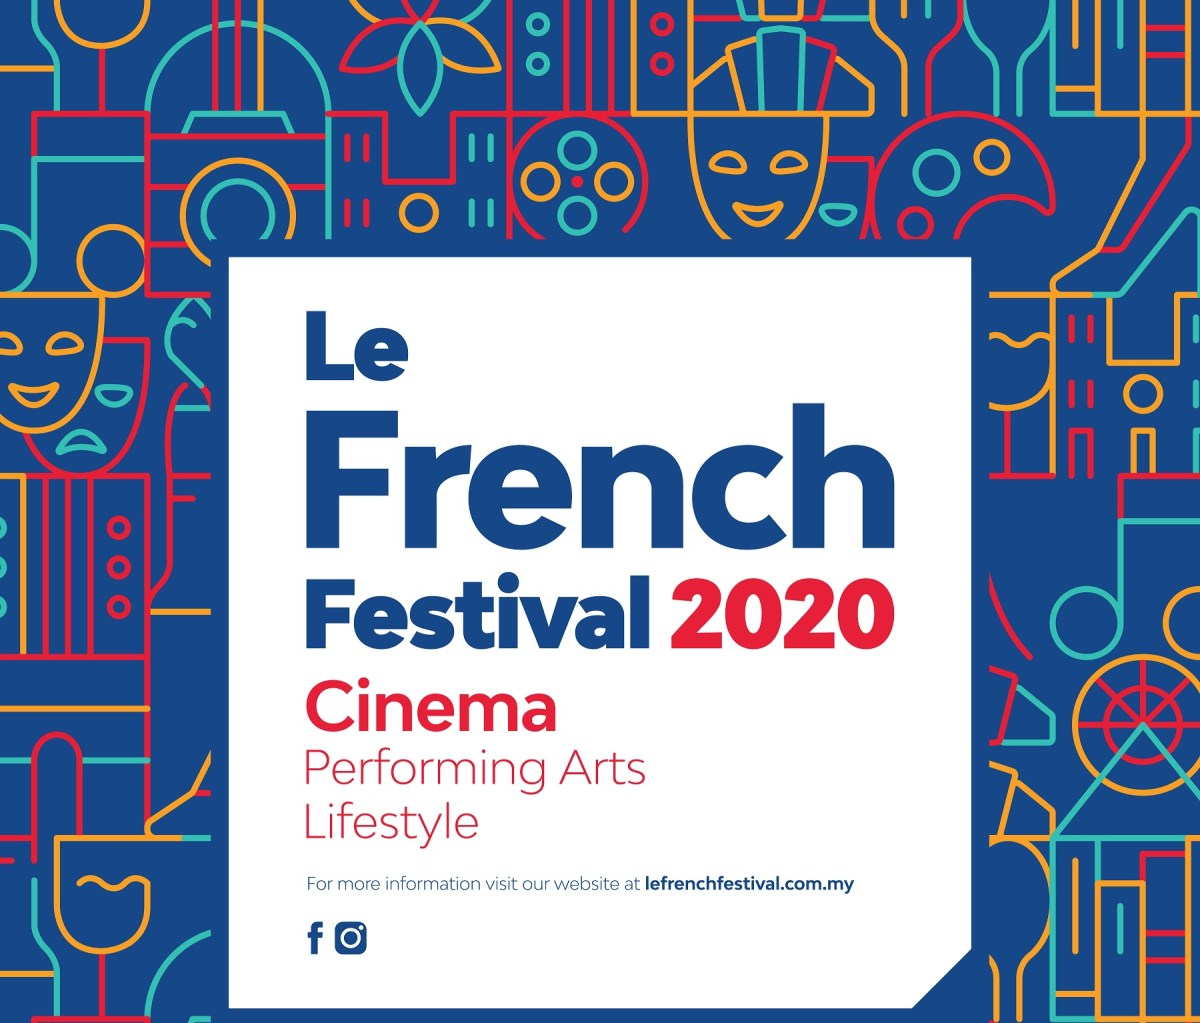 Press Statement from Alliance Française de Kuala Lumpur for Le French Festival 2020